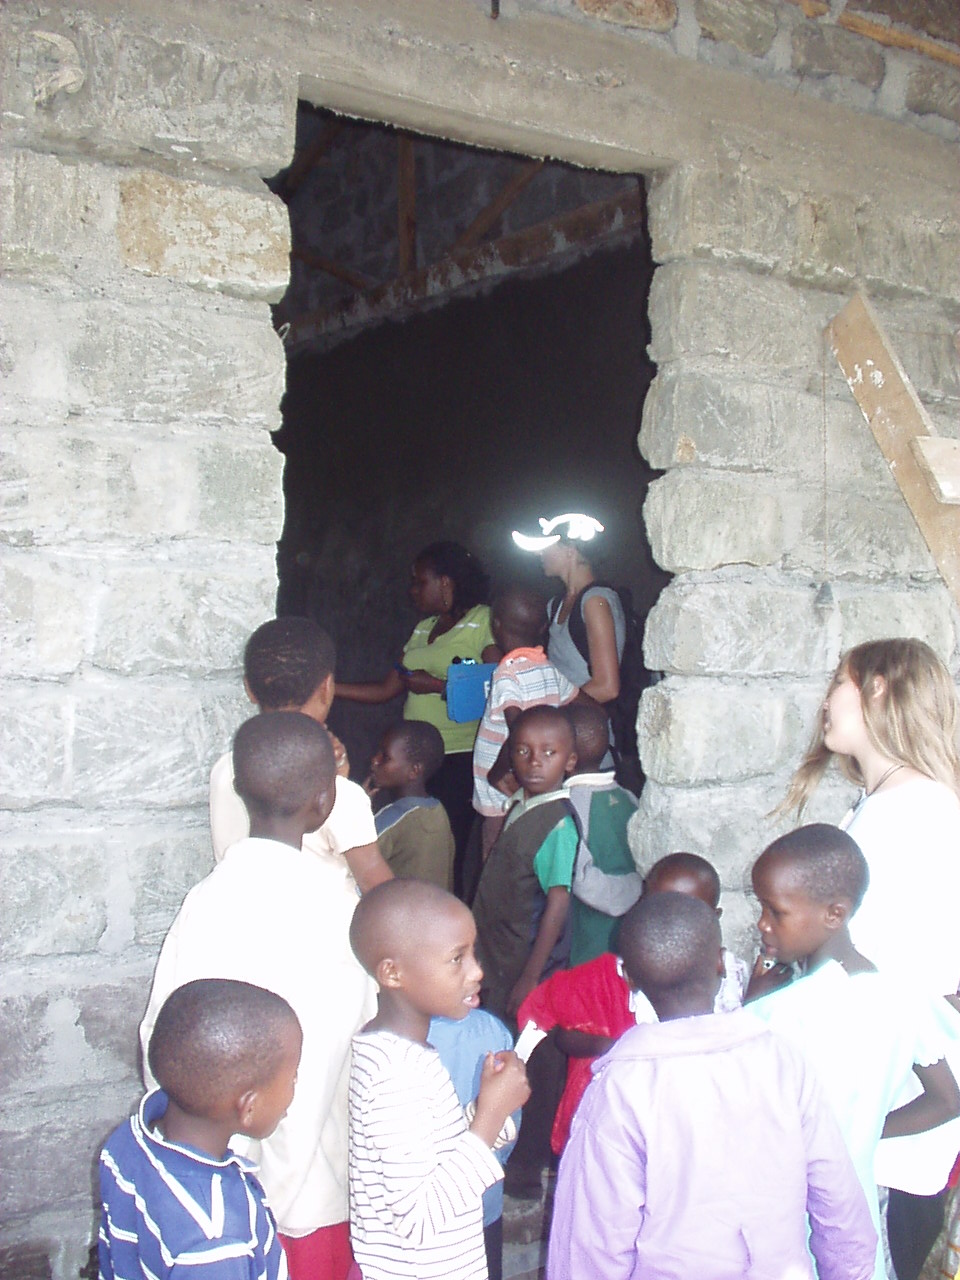 Checking out the School building under construction